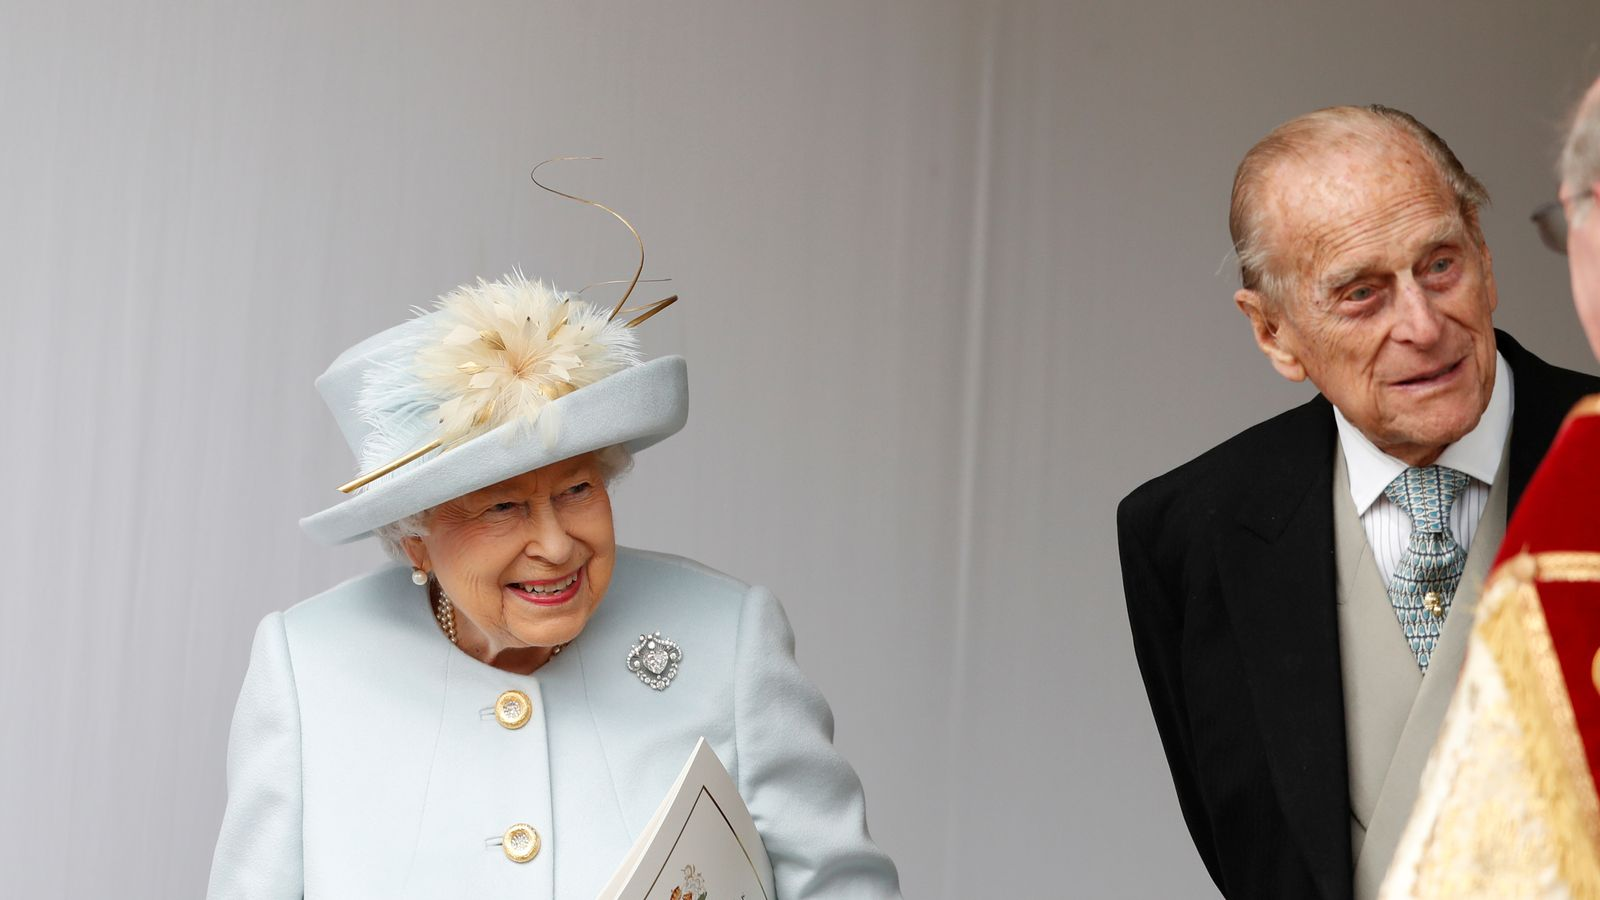 COVID-19: Prince William 'proud' of Queen and Duke for getting COVID jabs as he urges 'everyone' to get the vaccine